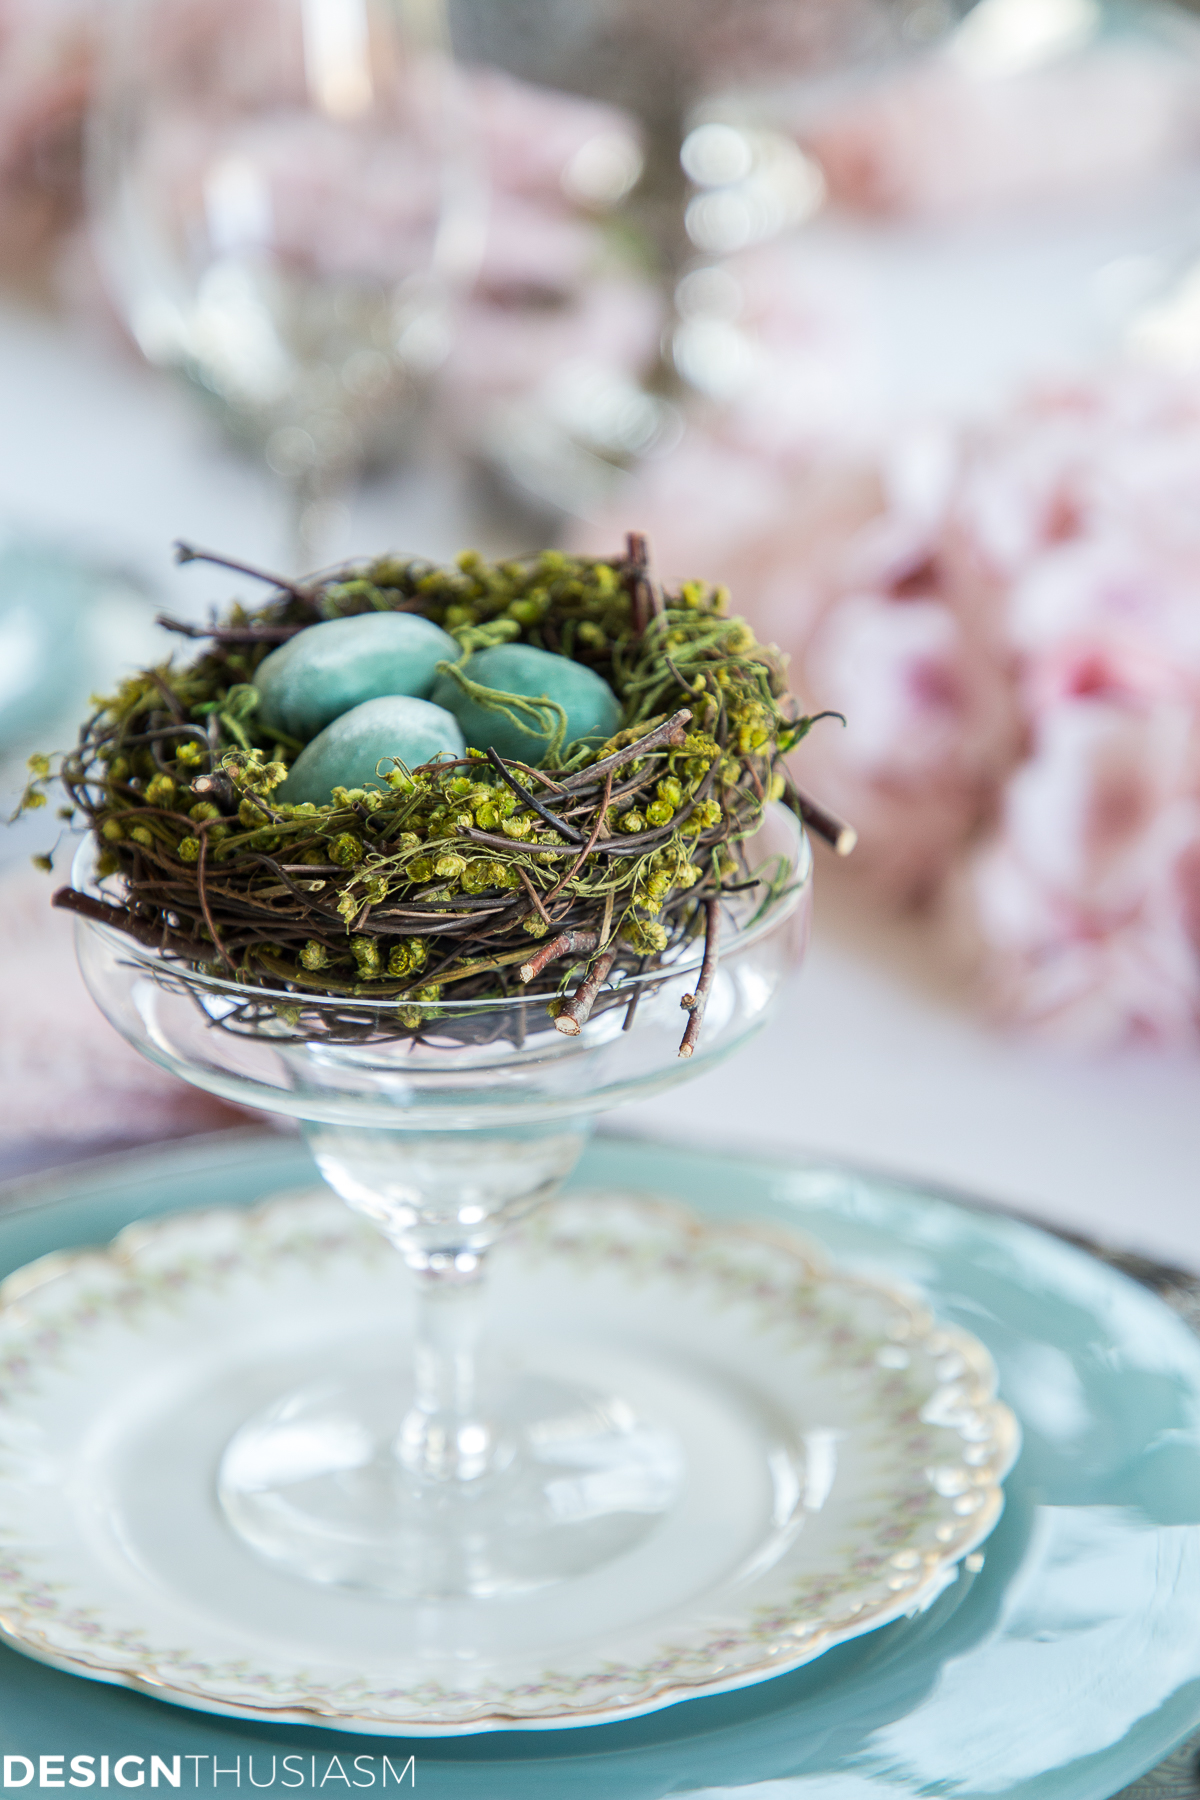 Easter table setting with bird nest and eggs in a fruit cup